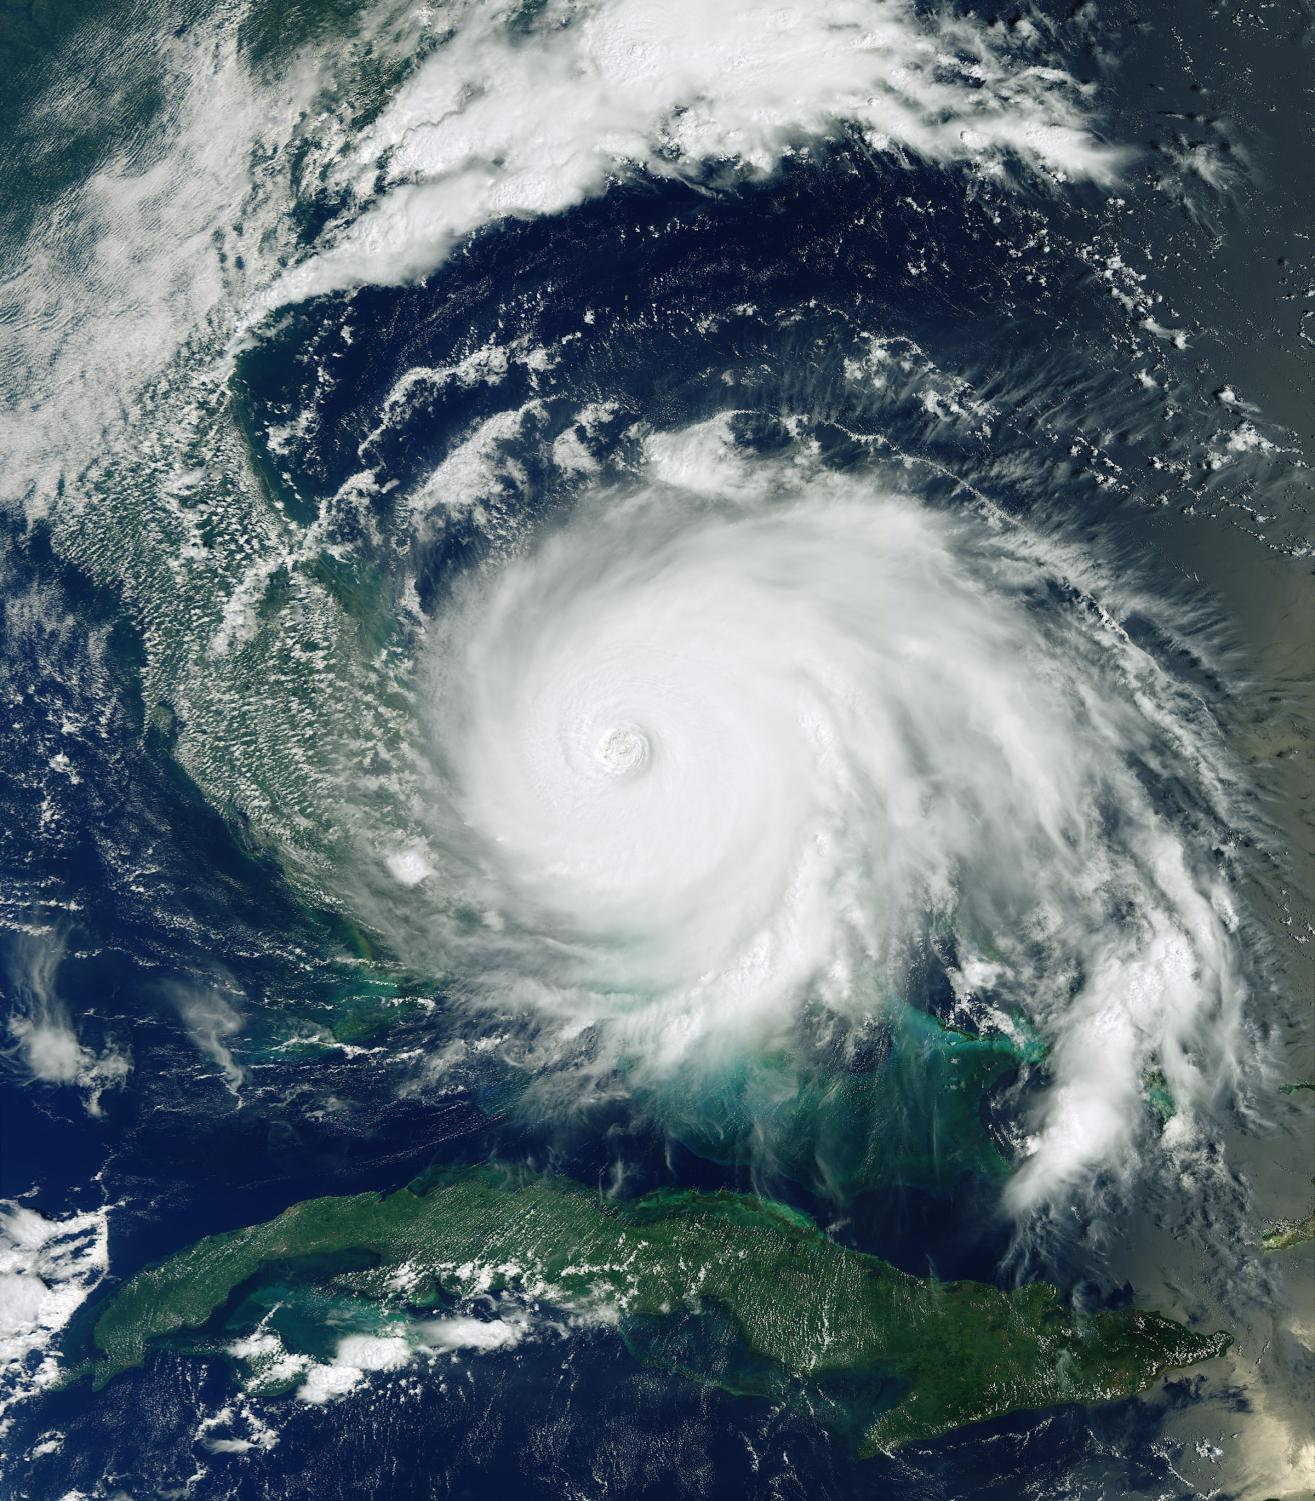 Hurricane Dorian as seen from the Copernicus Sentinel-3 satellite. Photo credit: wired.com.